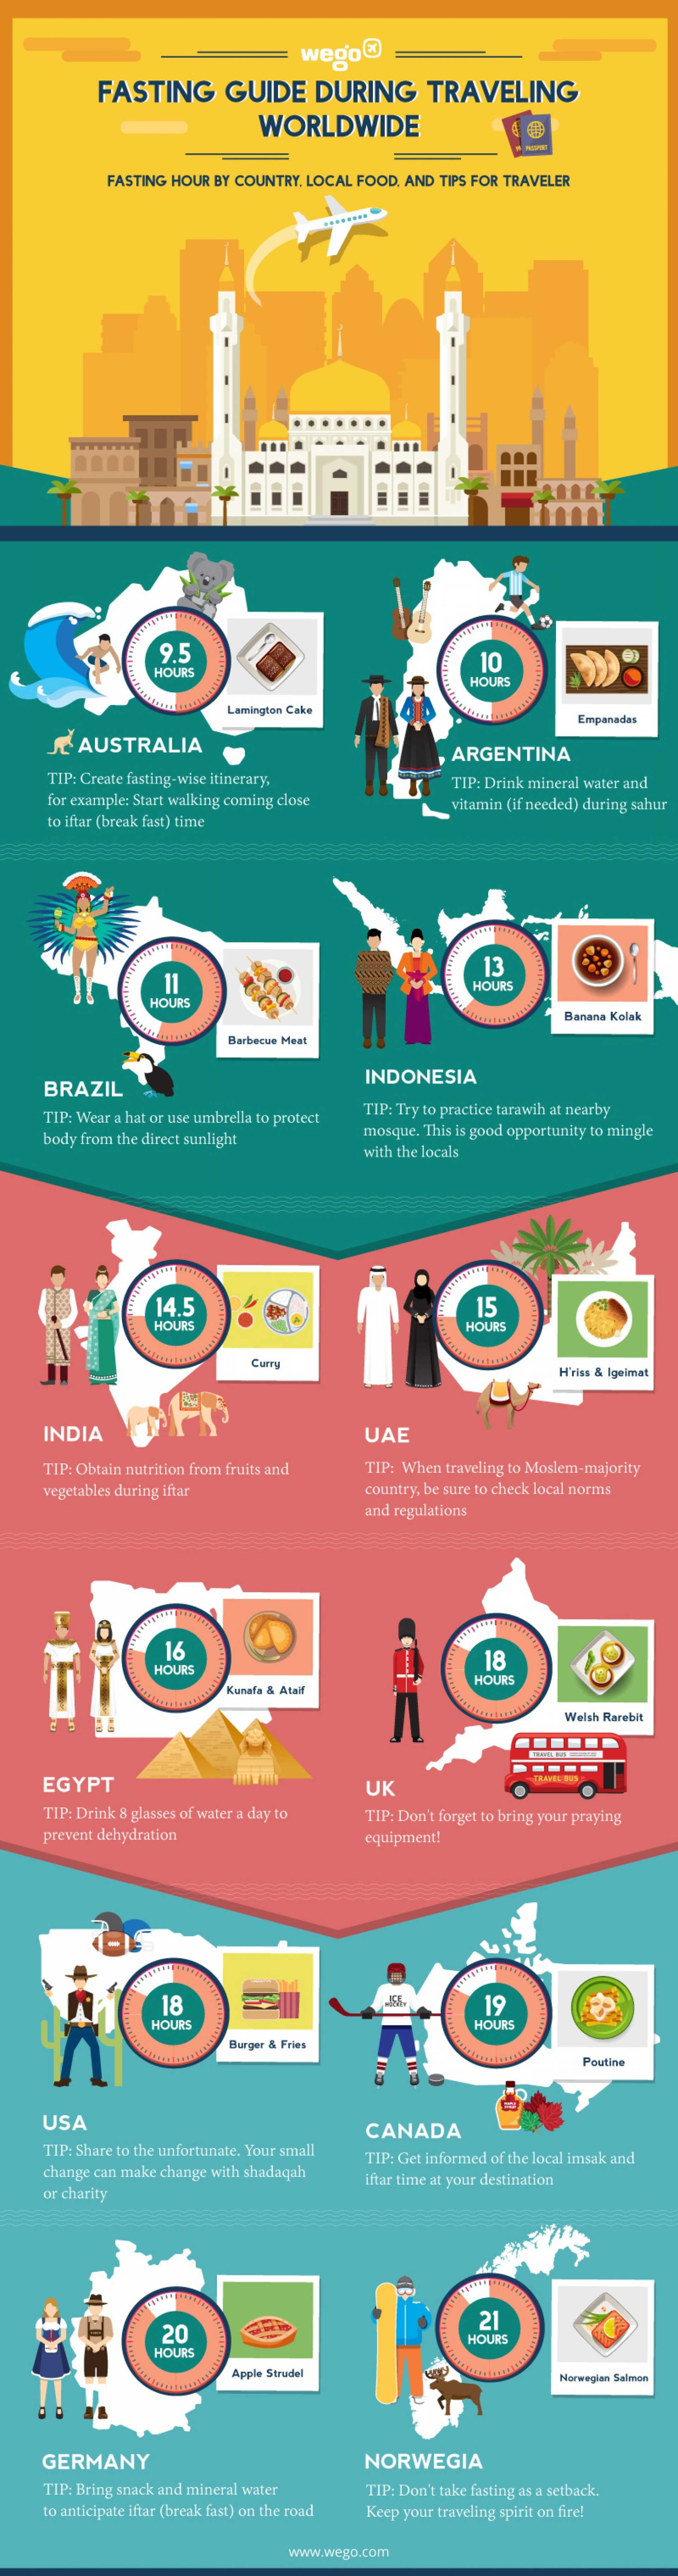 fasting guide during travelling worldwide